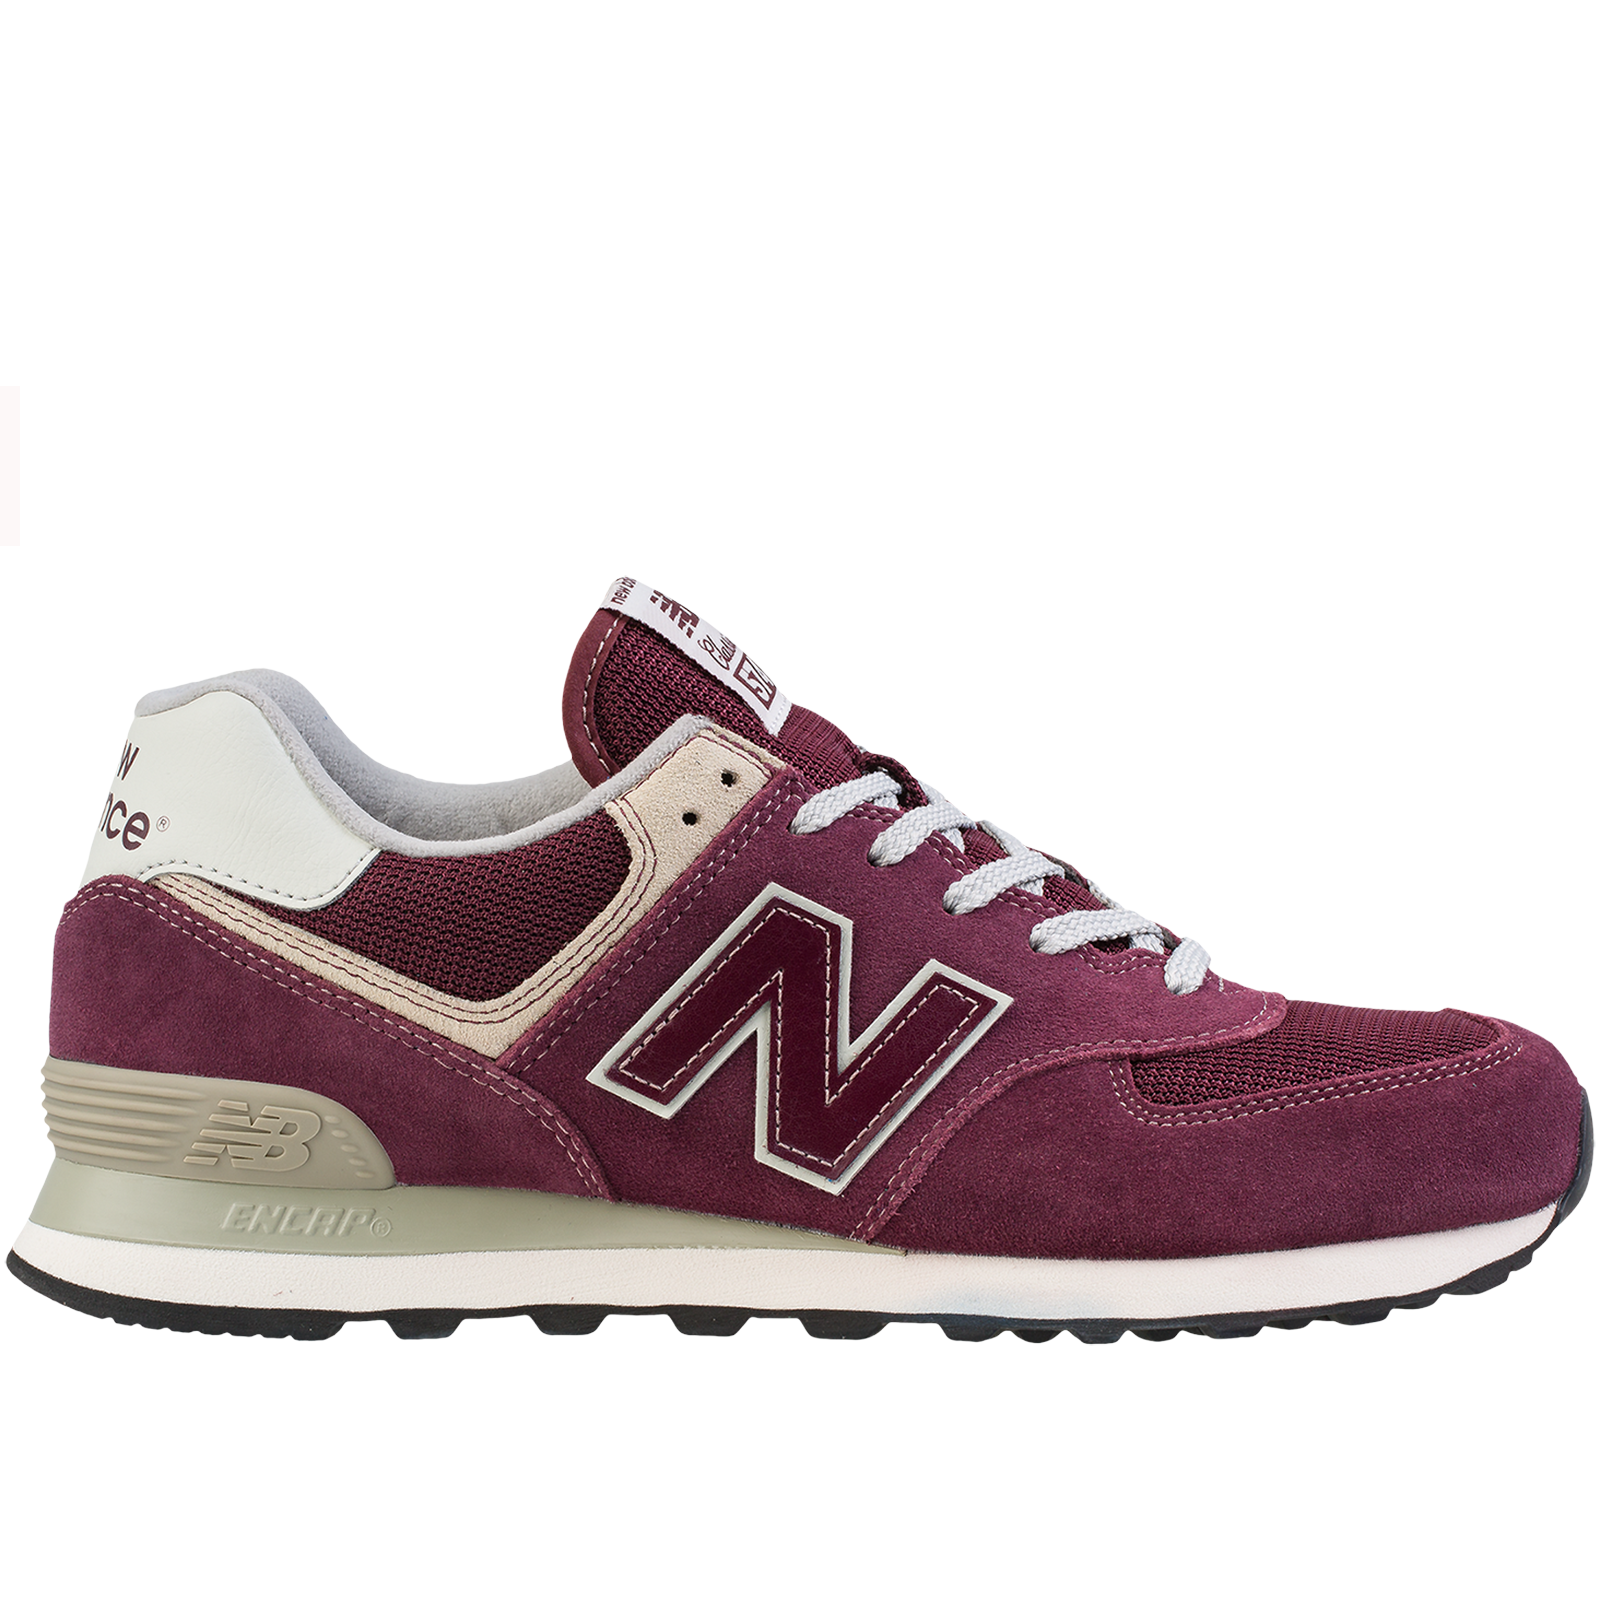 574 Classic Chaussure New Balance Chaussures Homme Chaussure